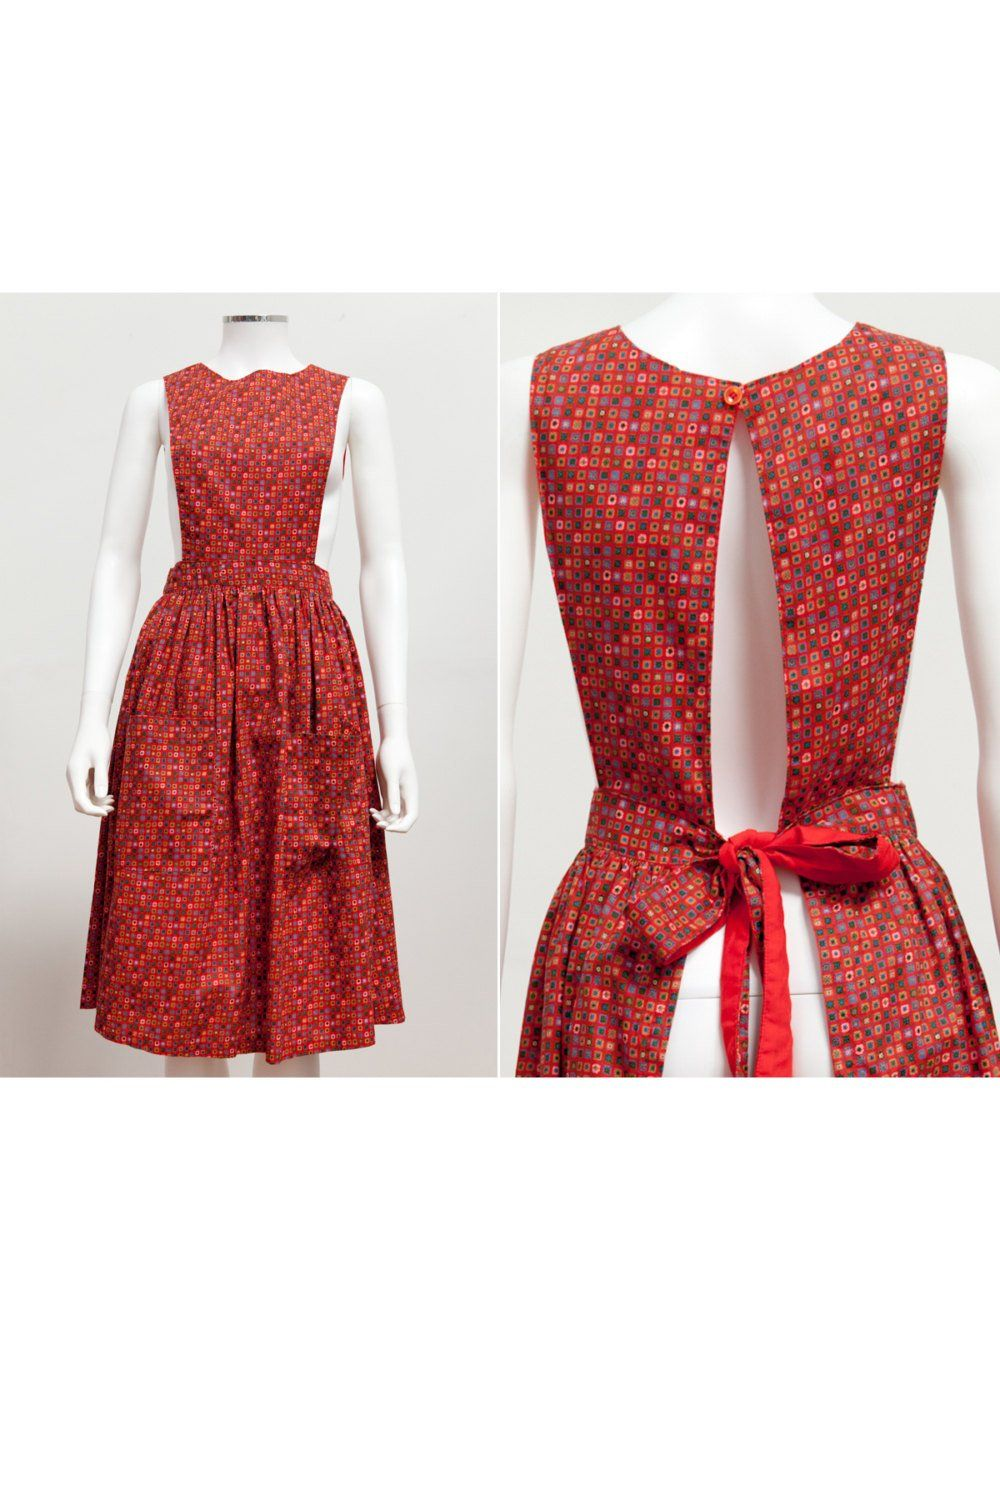 e7c5afa74b1 Vintage 60 s Pinafore Apron Dress Ditzy Print Jumper